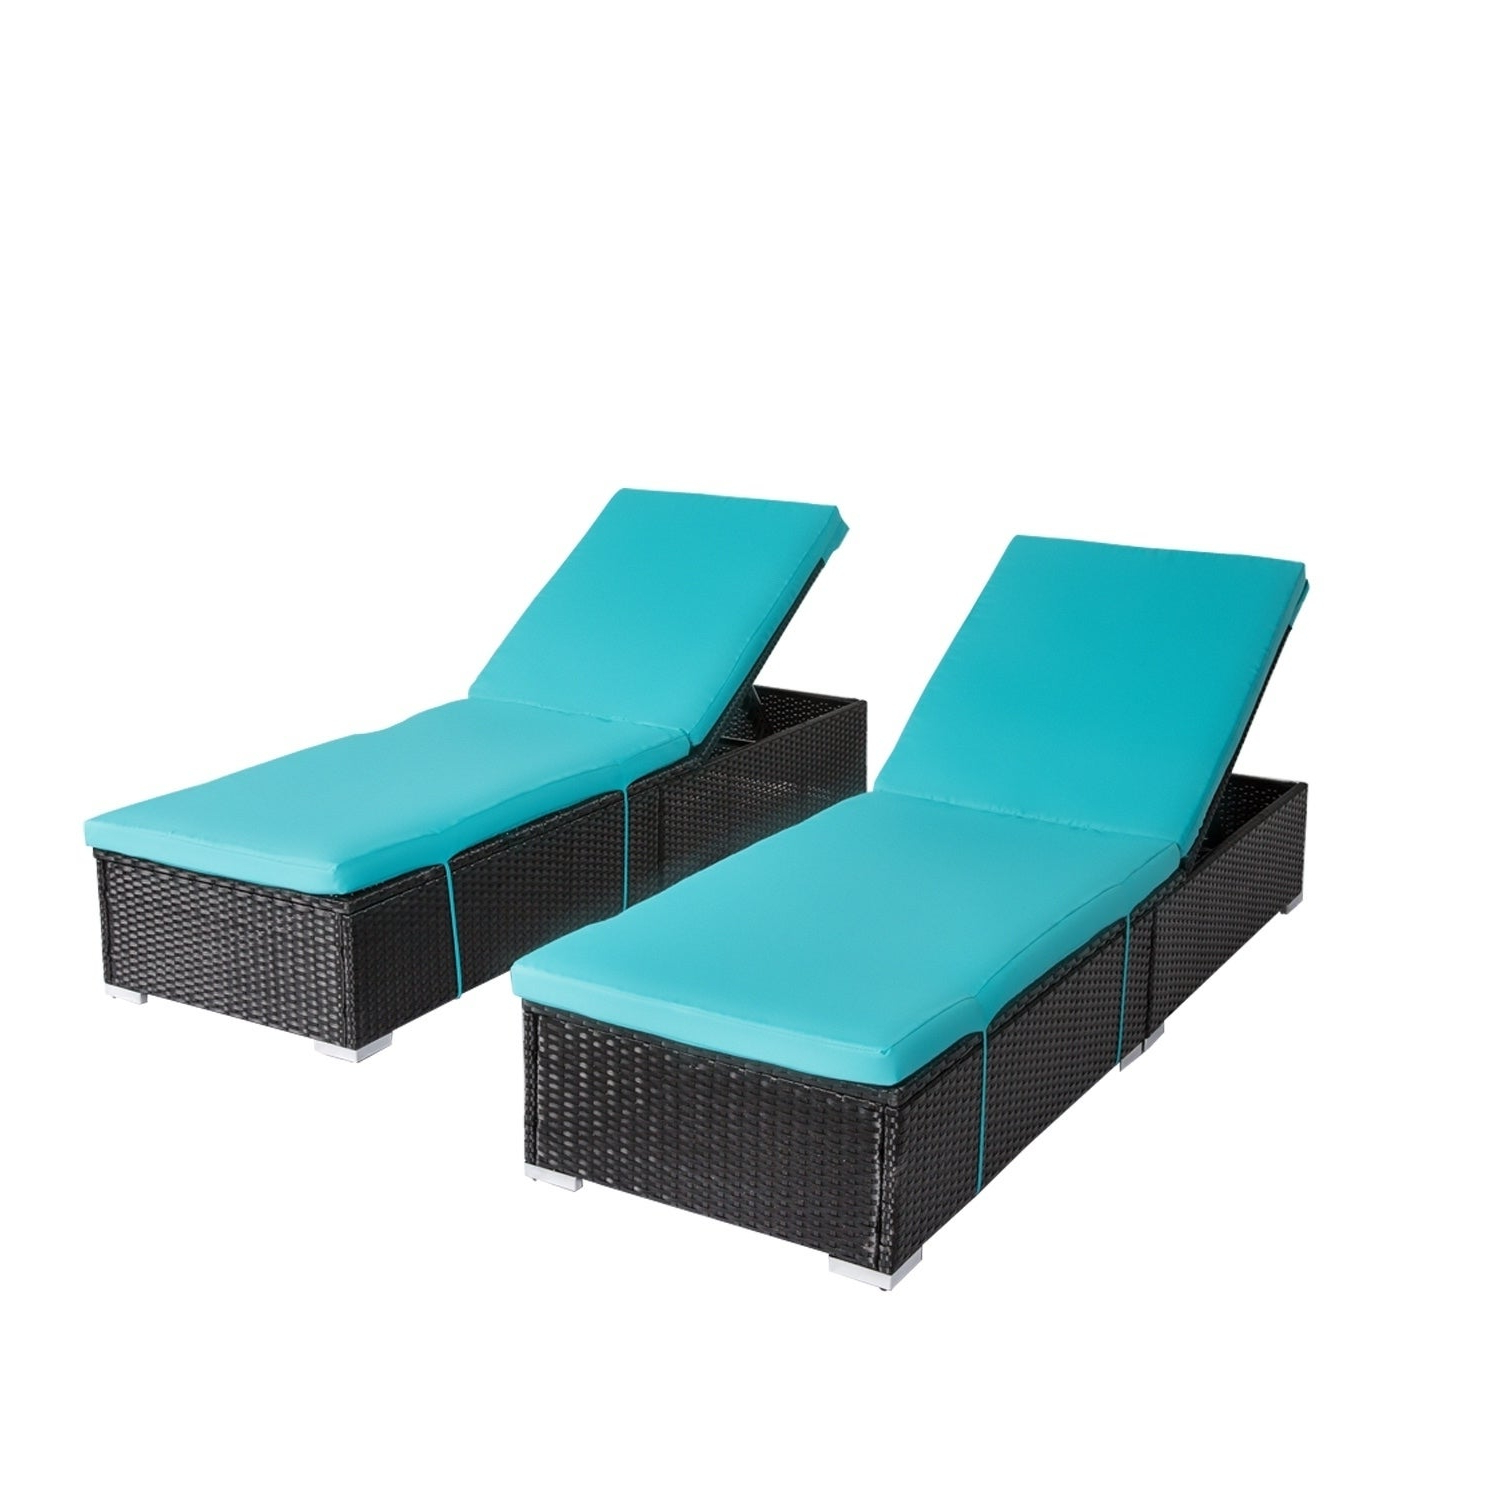 Featured Photo of Outdoor Adjustable Rattan Wicker Chaise Pool Chairs With Cushions